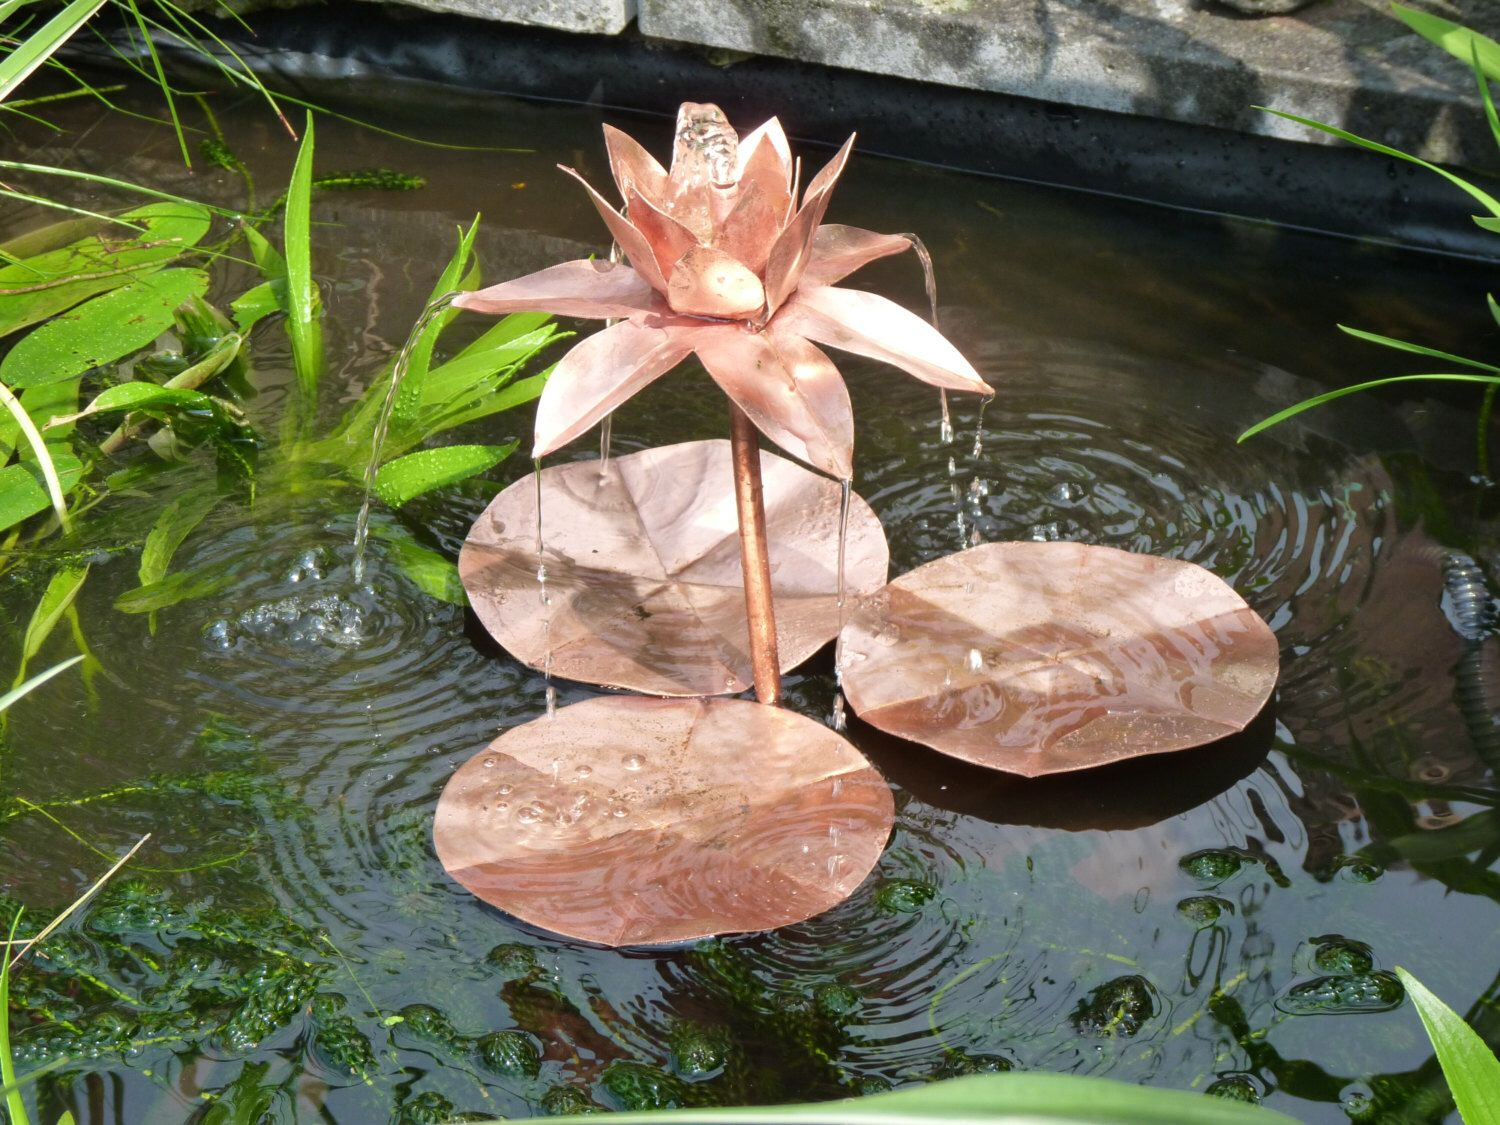 Copper Lotus Flower Fountain Sculpture For Pond Or Water Feature By  DeshcaDesigns On Etsy Https: